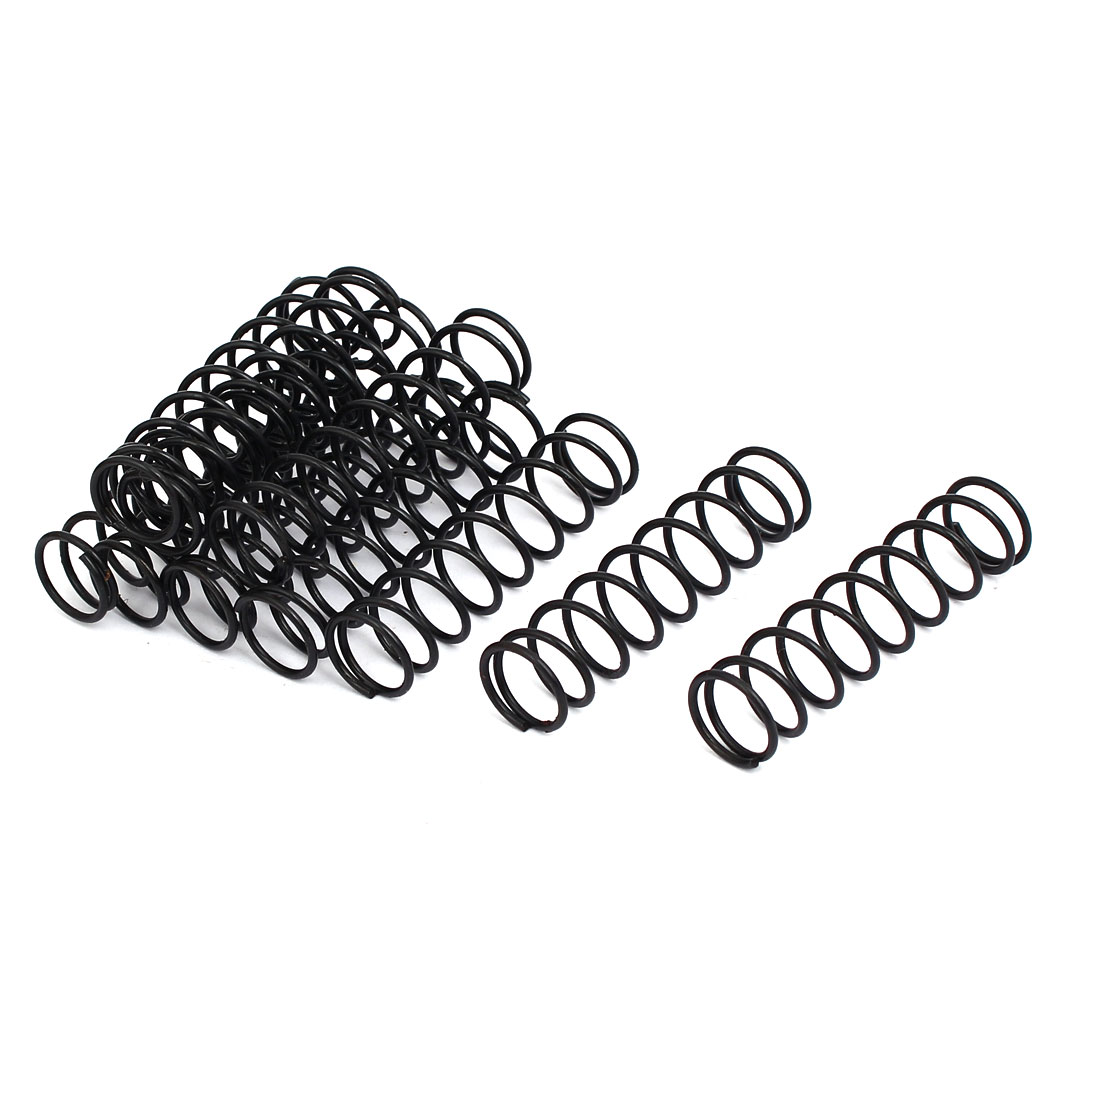 Compression Springs 1 2mm Wire Dia 13mm Outer Diameter 50mm Long Compression Springs Black 10pcs